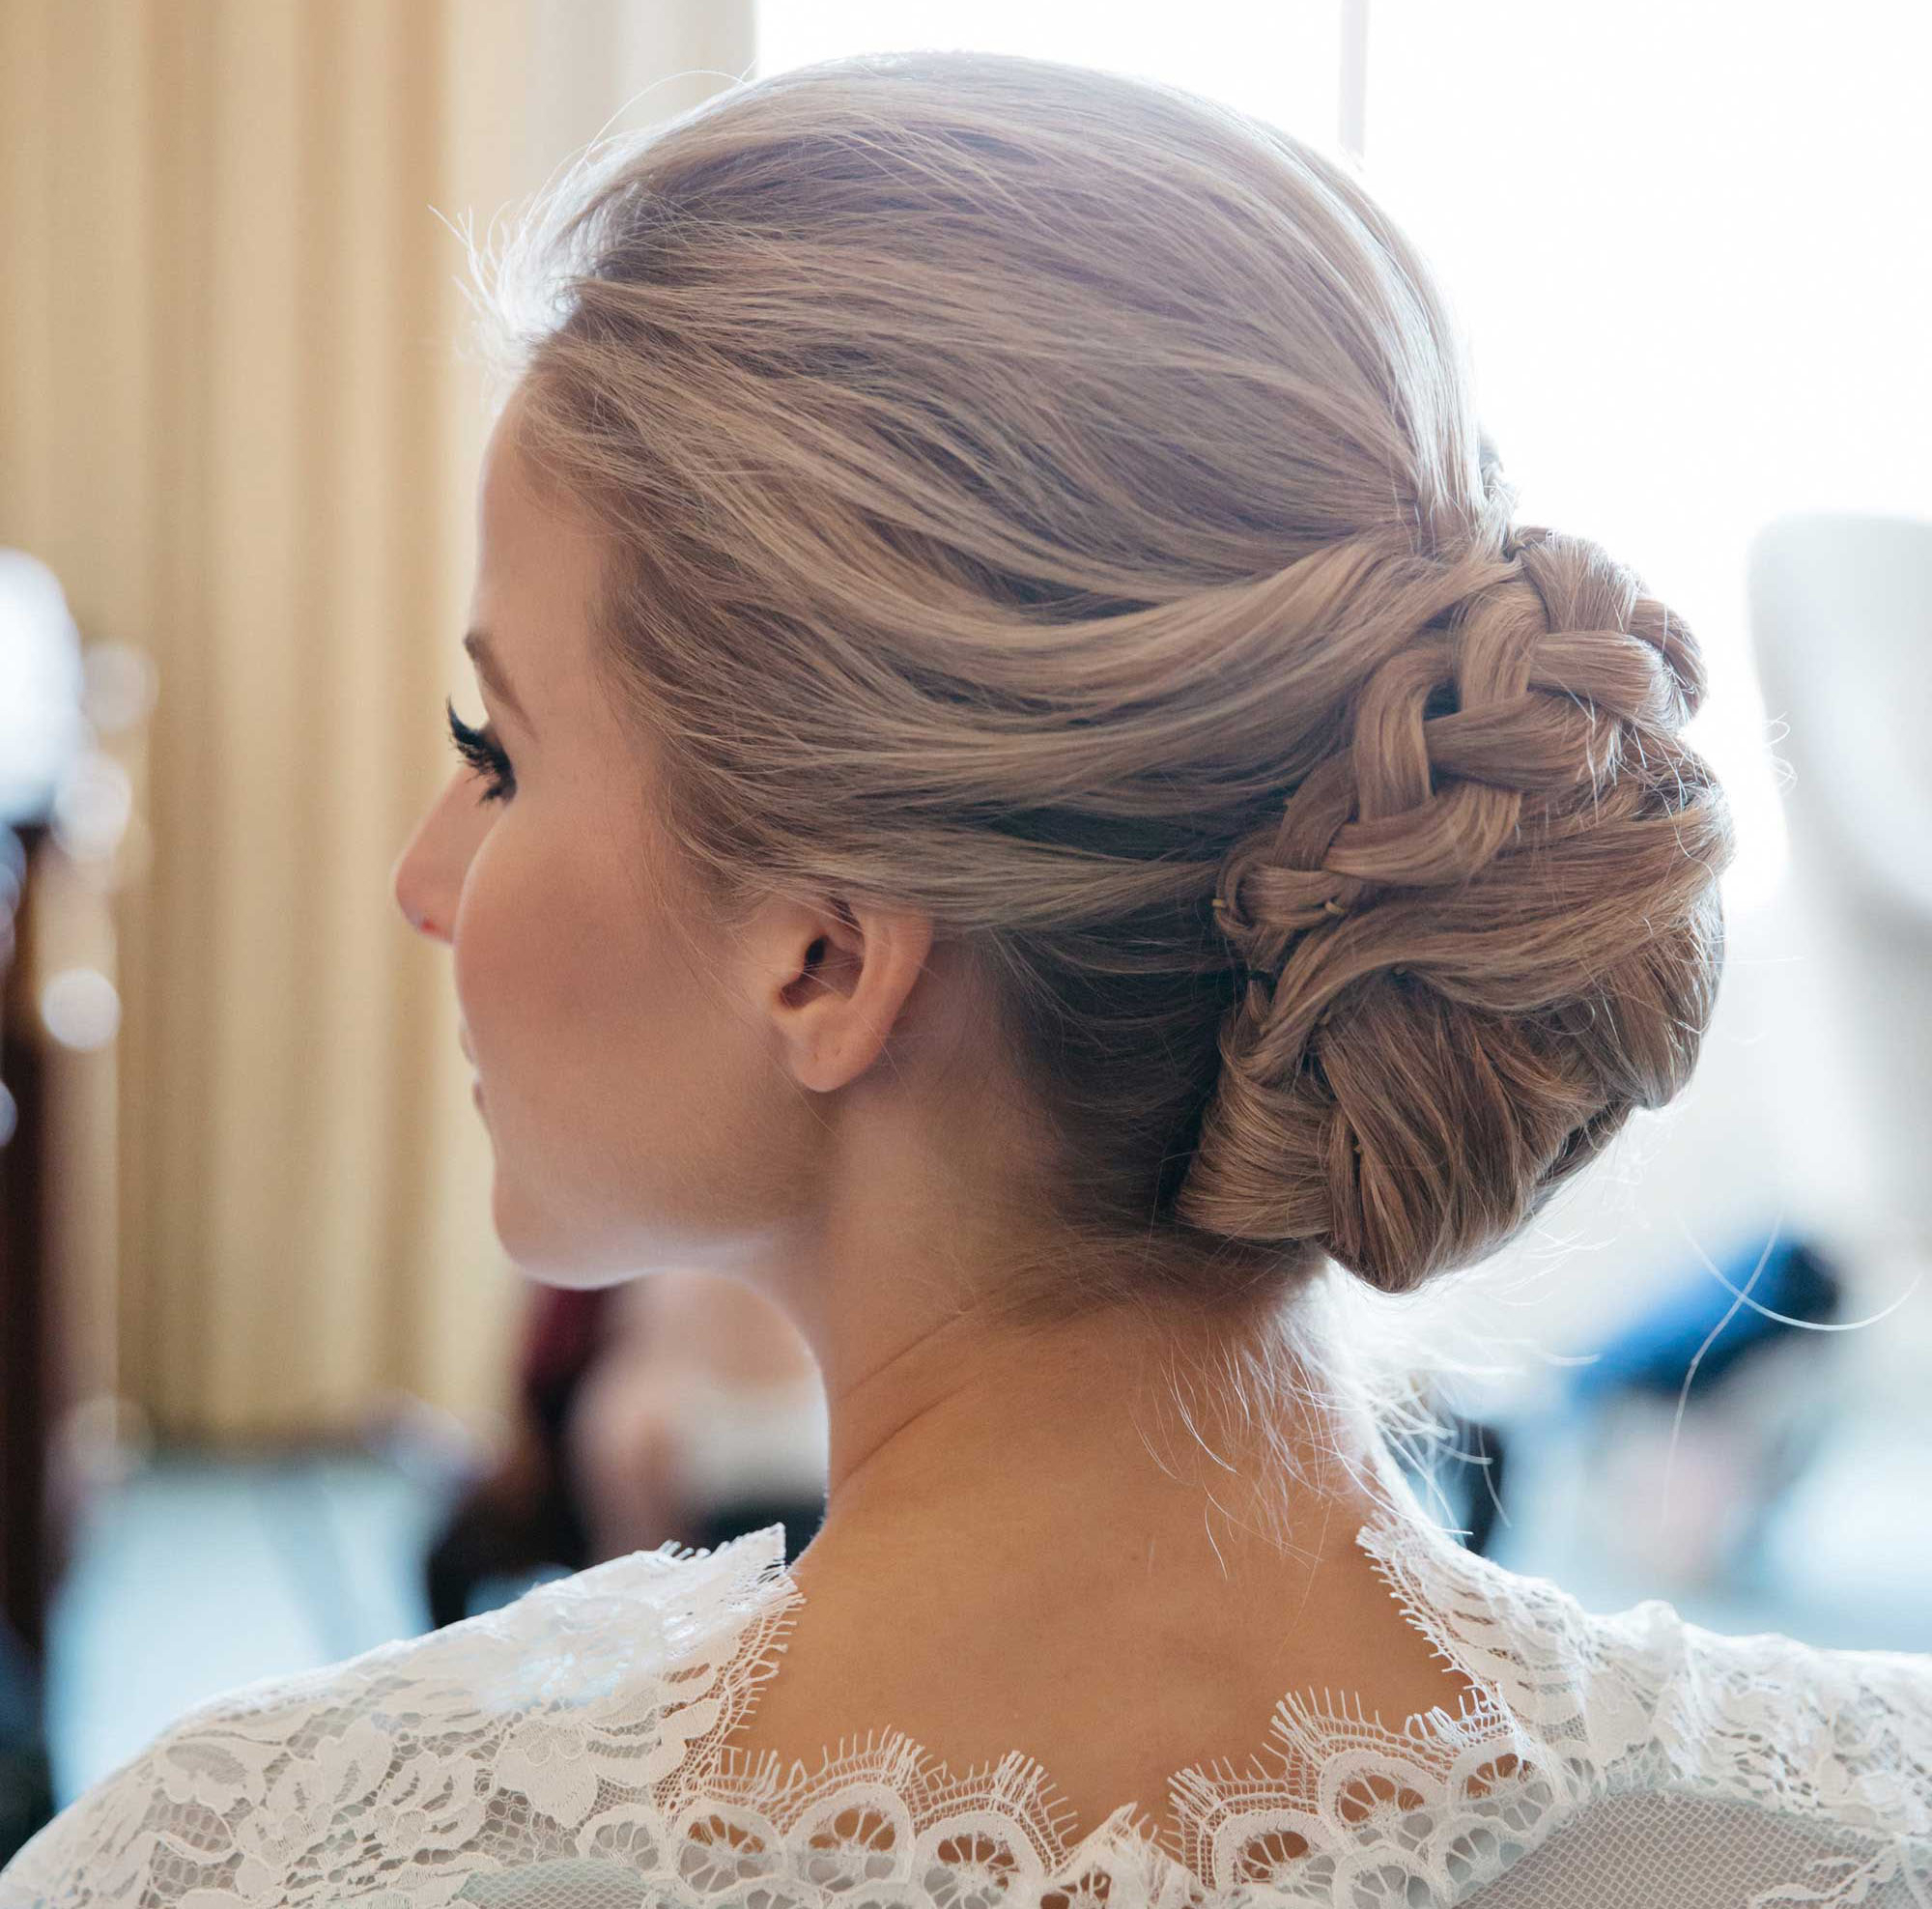 Braided Hairstyles: 5 Ideas For Your Wedding Look – Inside Regarding 2020 Braids And Bouffant Hairstyles (View 8 of 20)